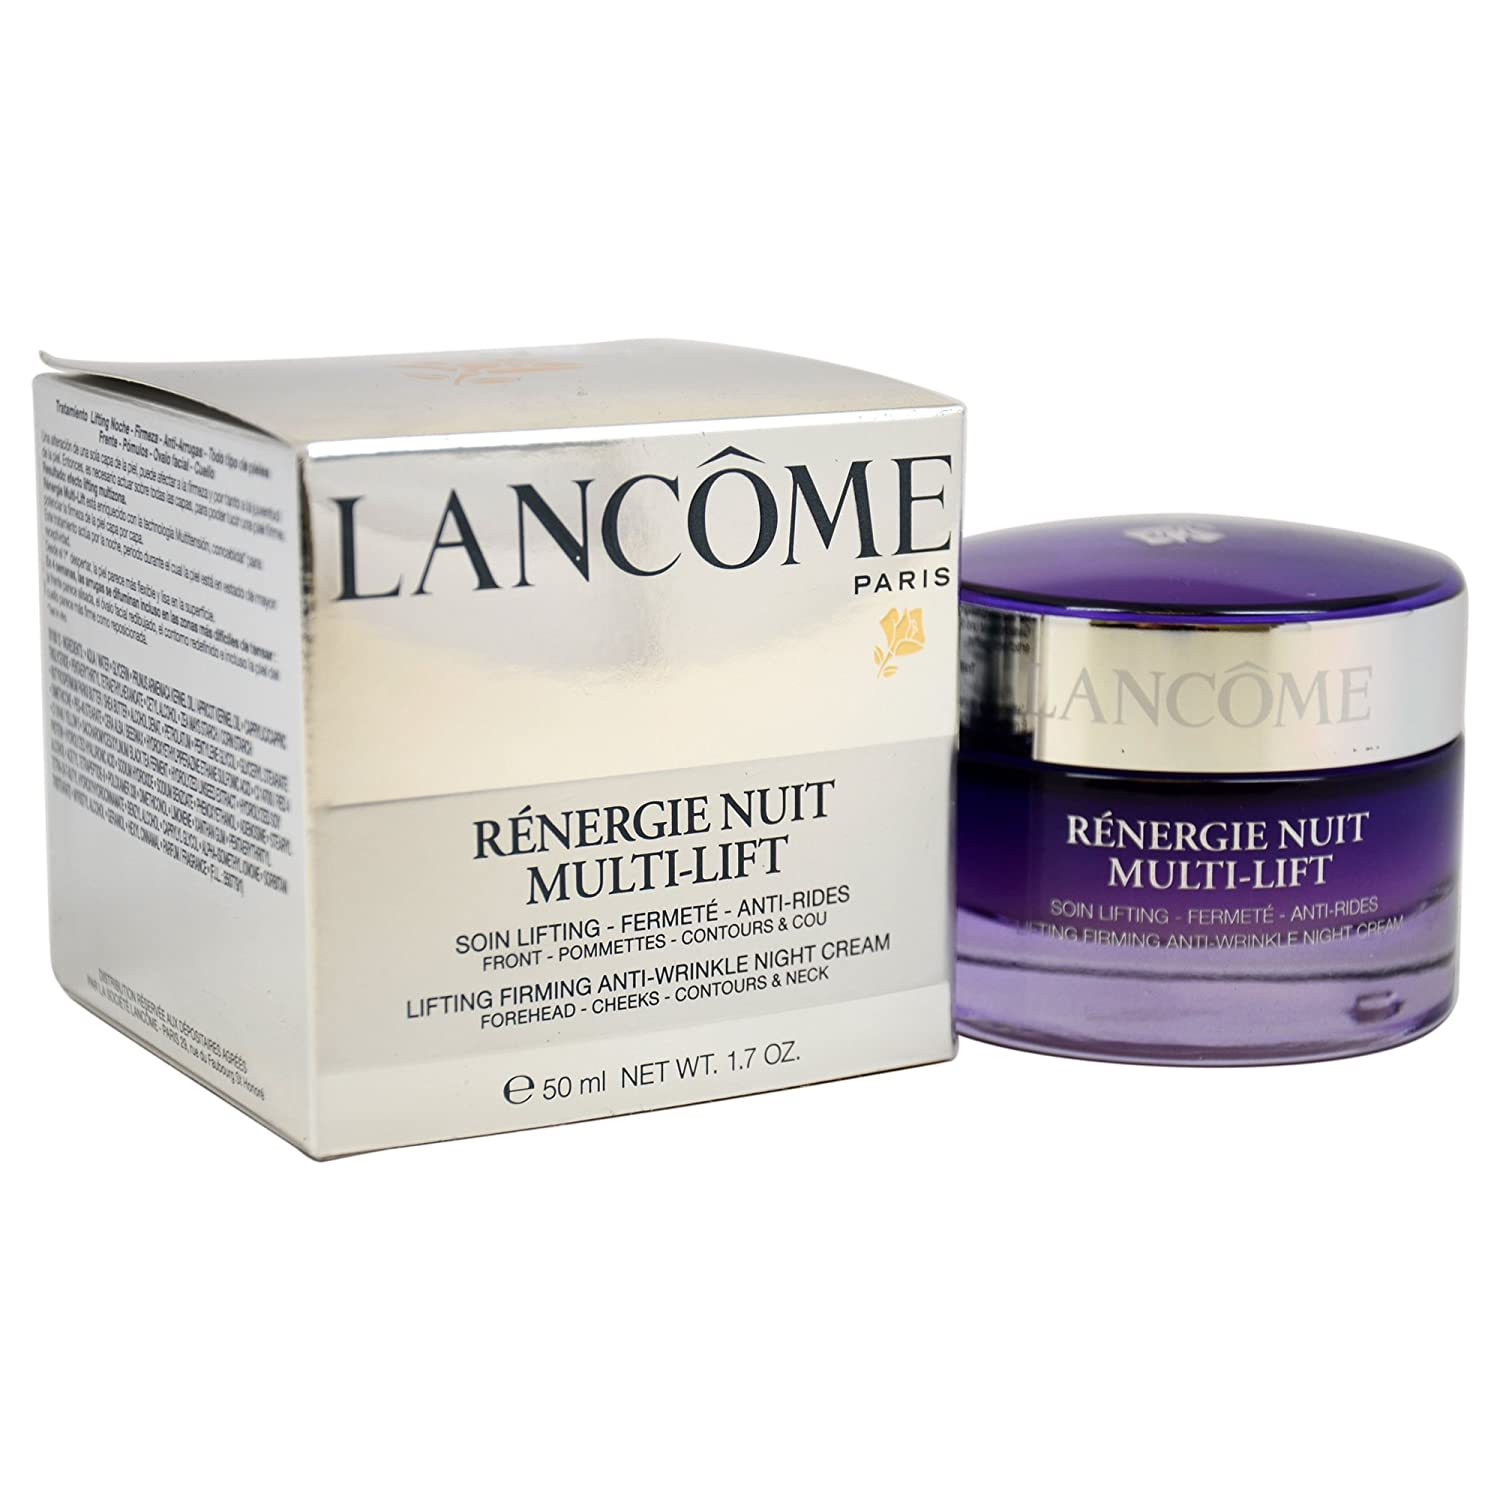 Lancome Brand Cheap Sale Venue Renergie In a popularity Nuit Multi-Lift Firming Crea Night Anti-Wrinkle